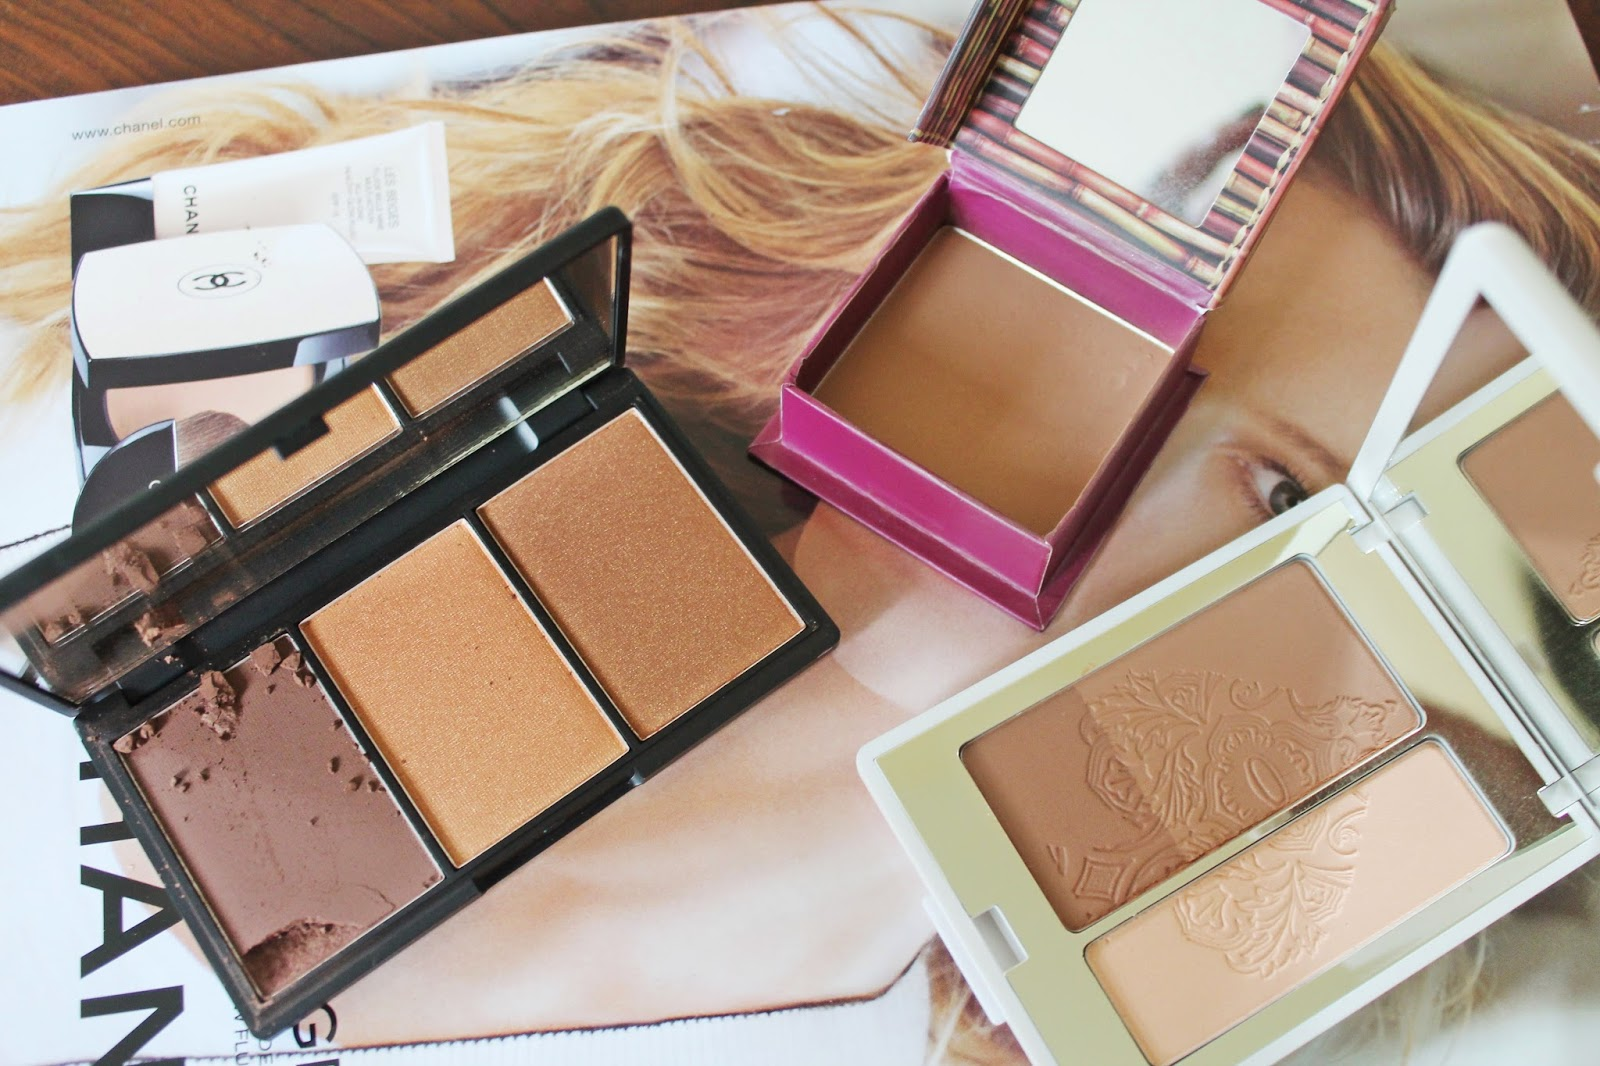 Contour Palettes: Benefit Hoola Bronzer, Kiko Golden Game Sculpting Bronzer, Sleek MakeUp Face Form - Aspiring Londoner